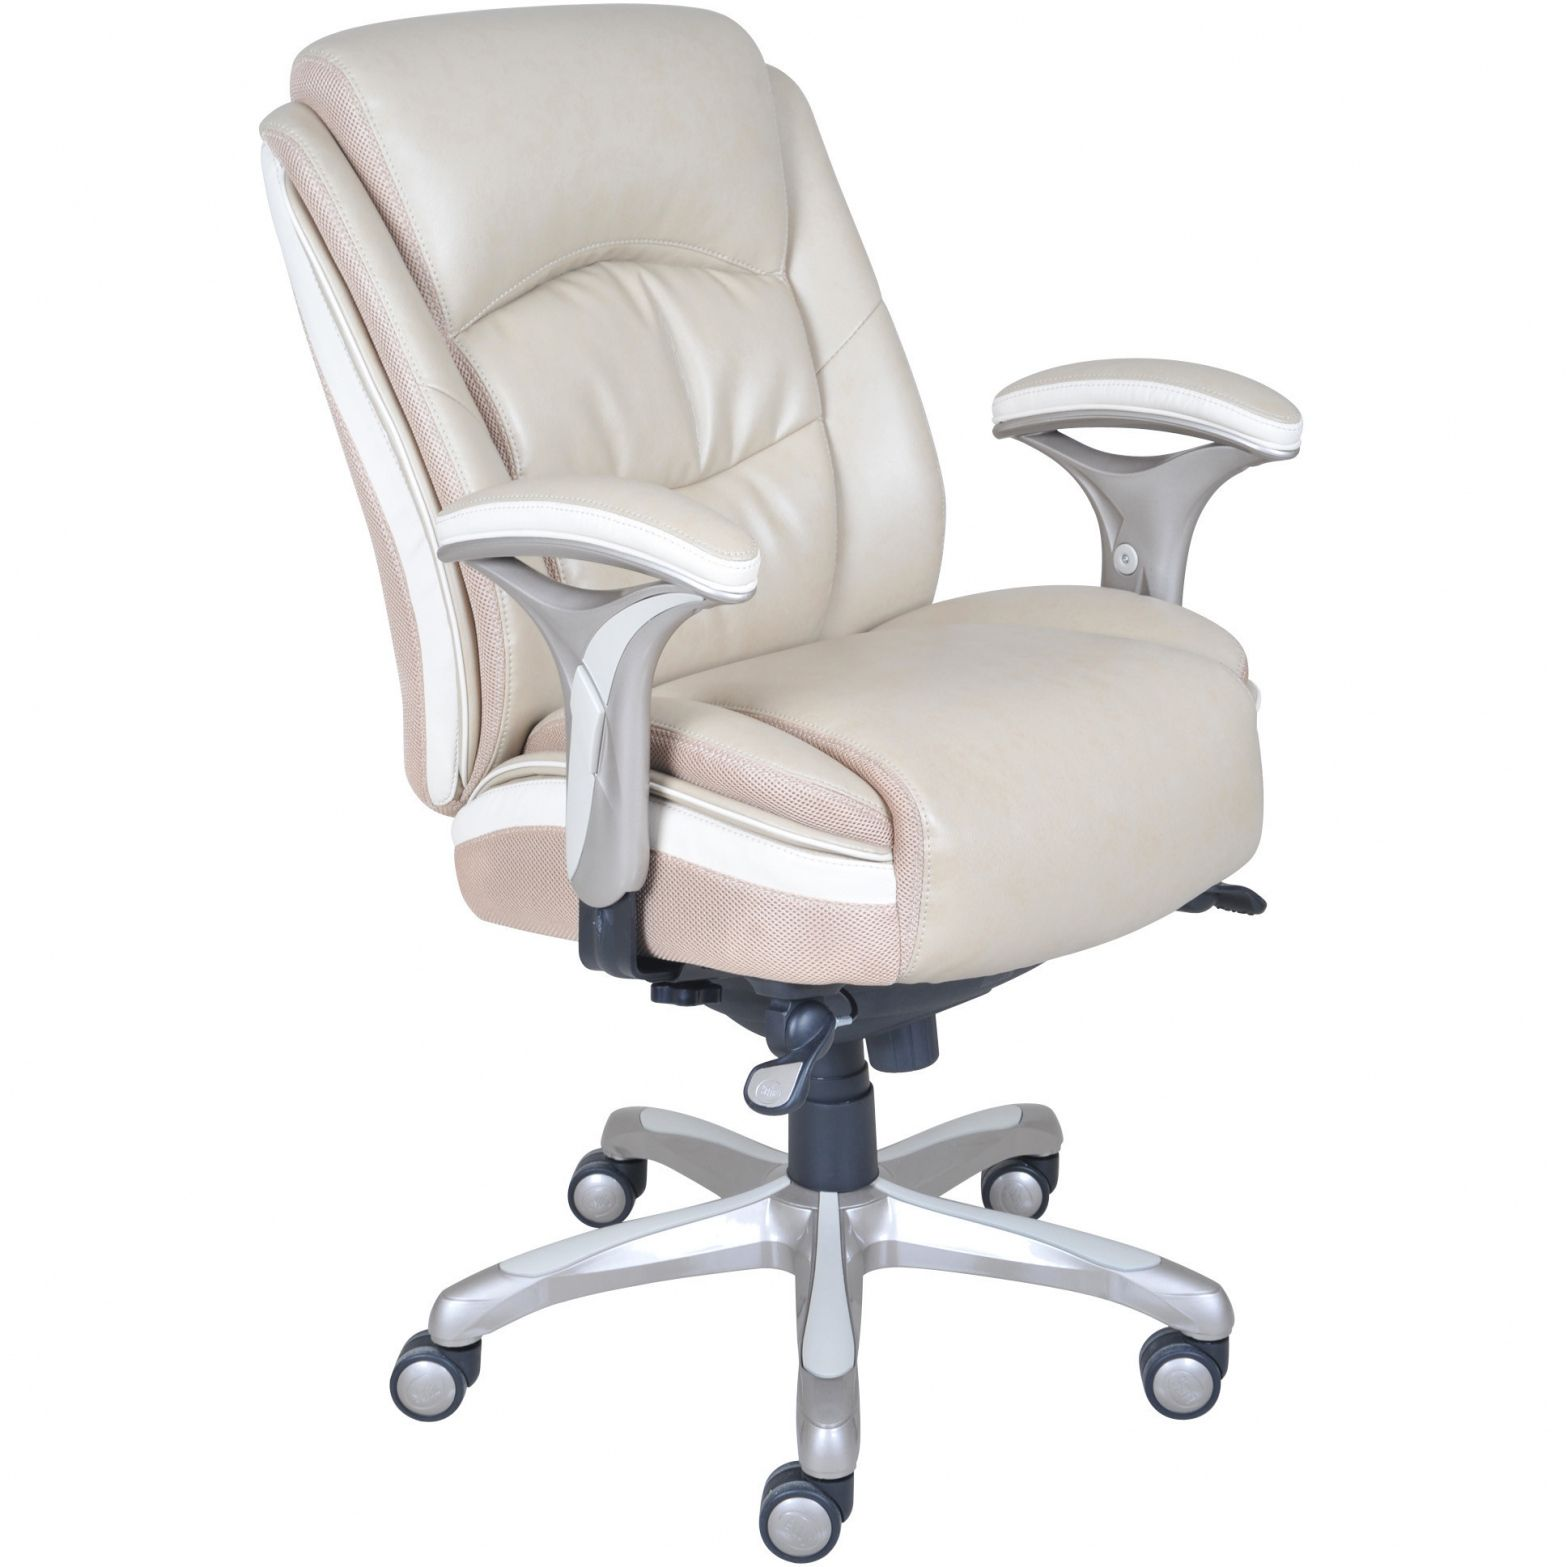 70+ Serta Executive High Back Chair   Modern Home Office Furniture Check  More At ...